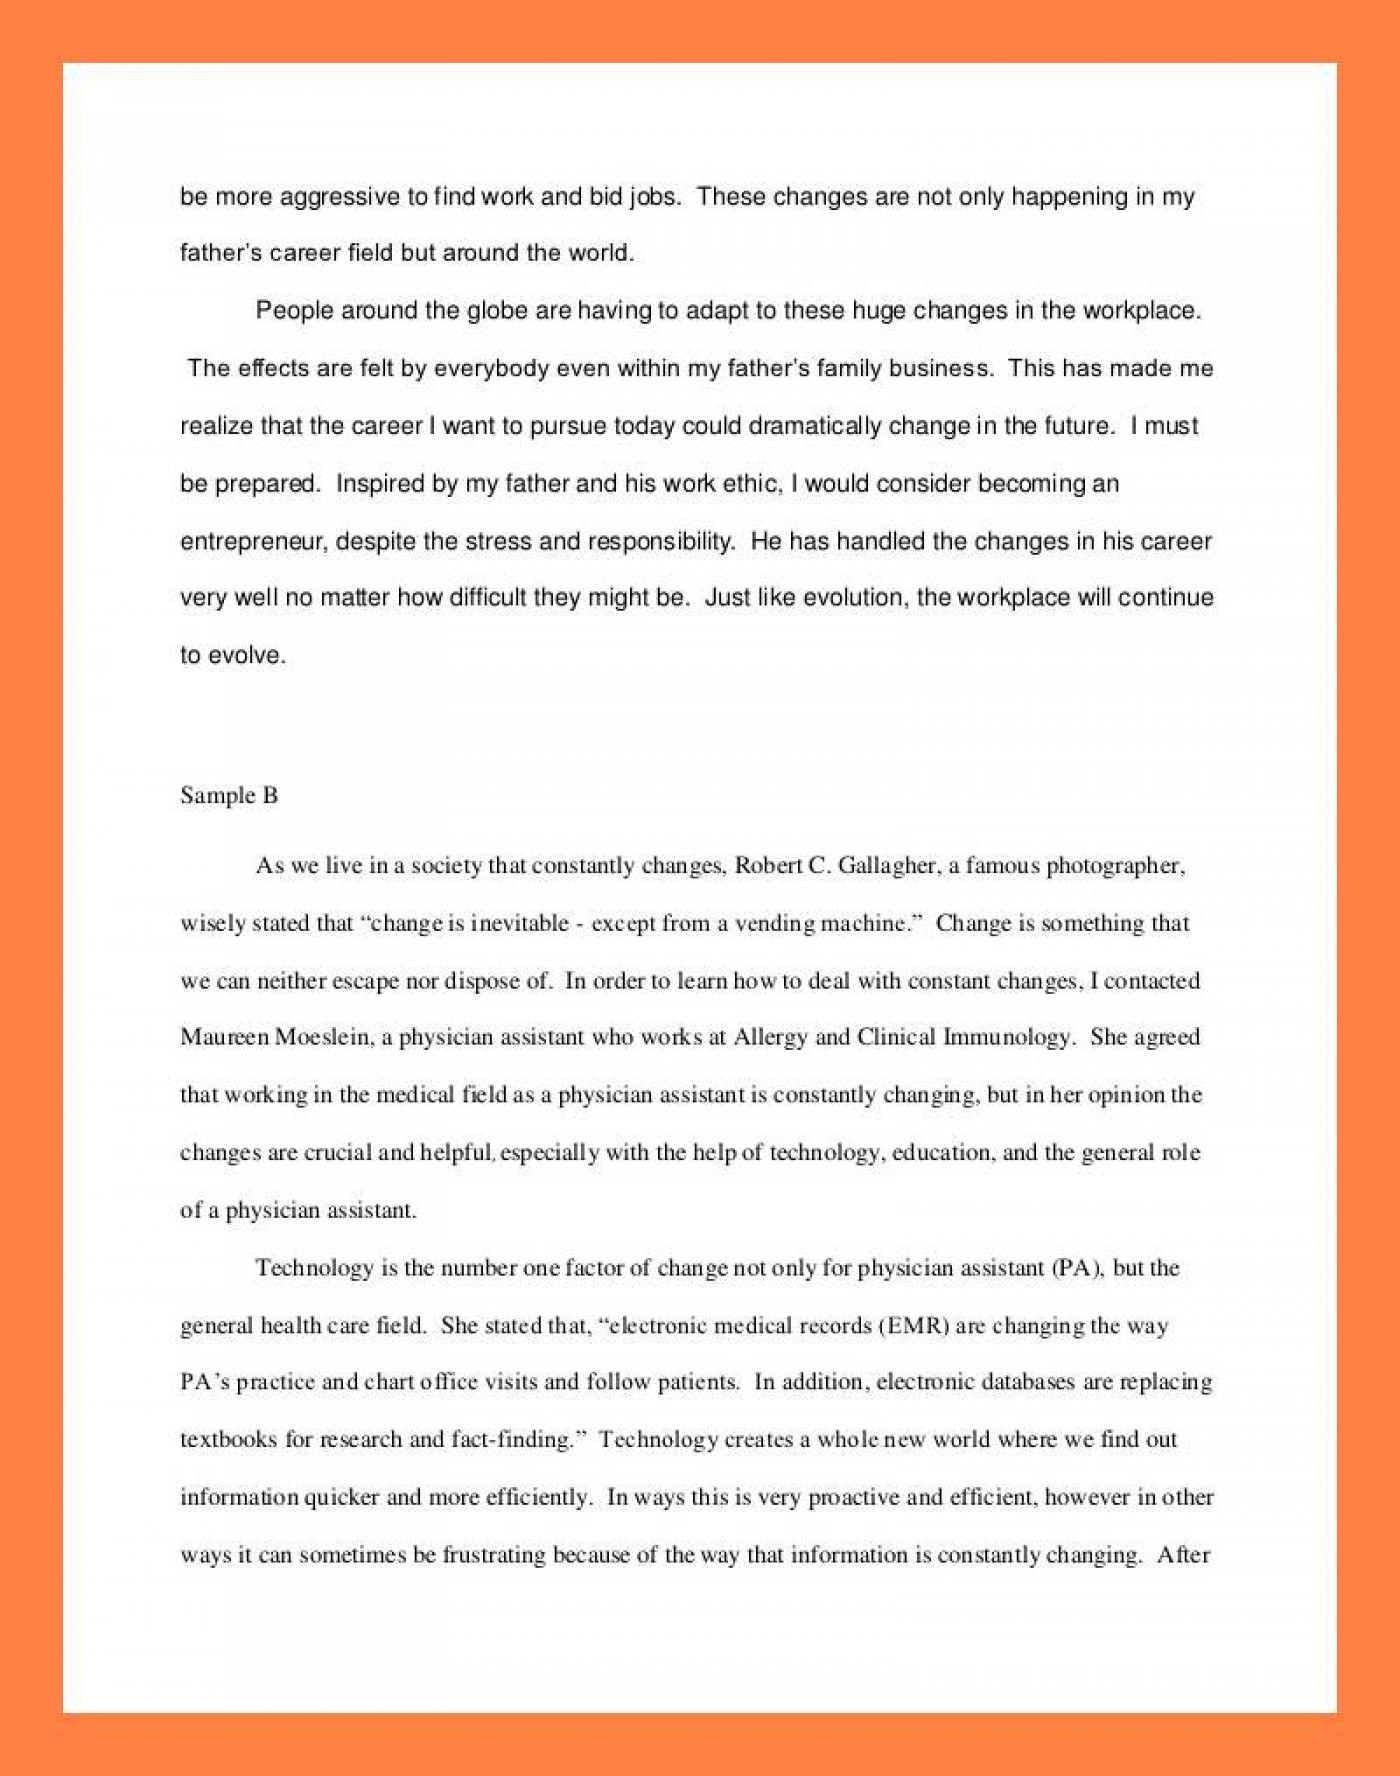 012 Interview Essay Example Examples Of Student Reflections Shocking Paper Format Apa Mla 1400